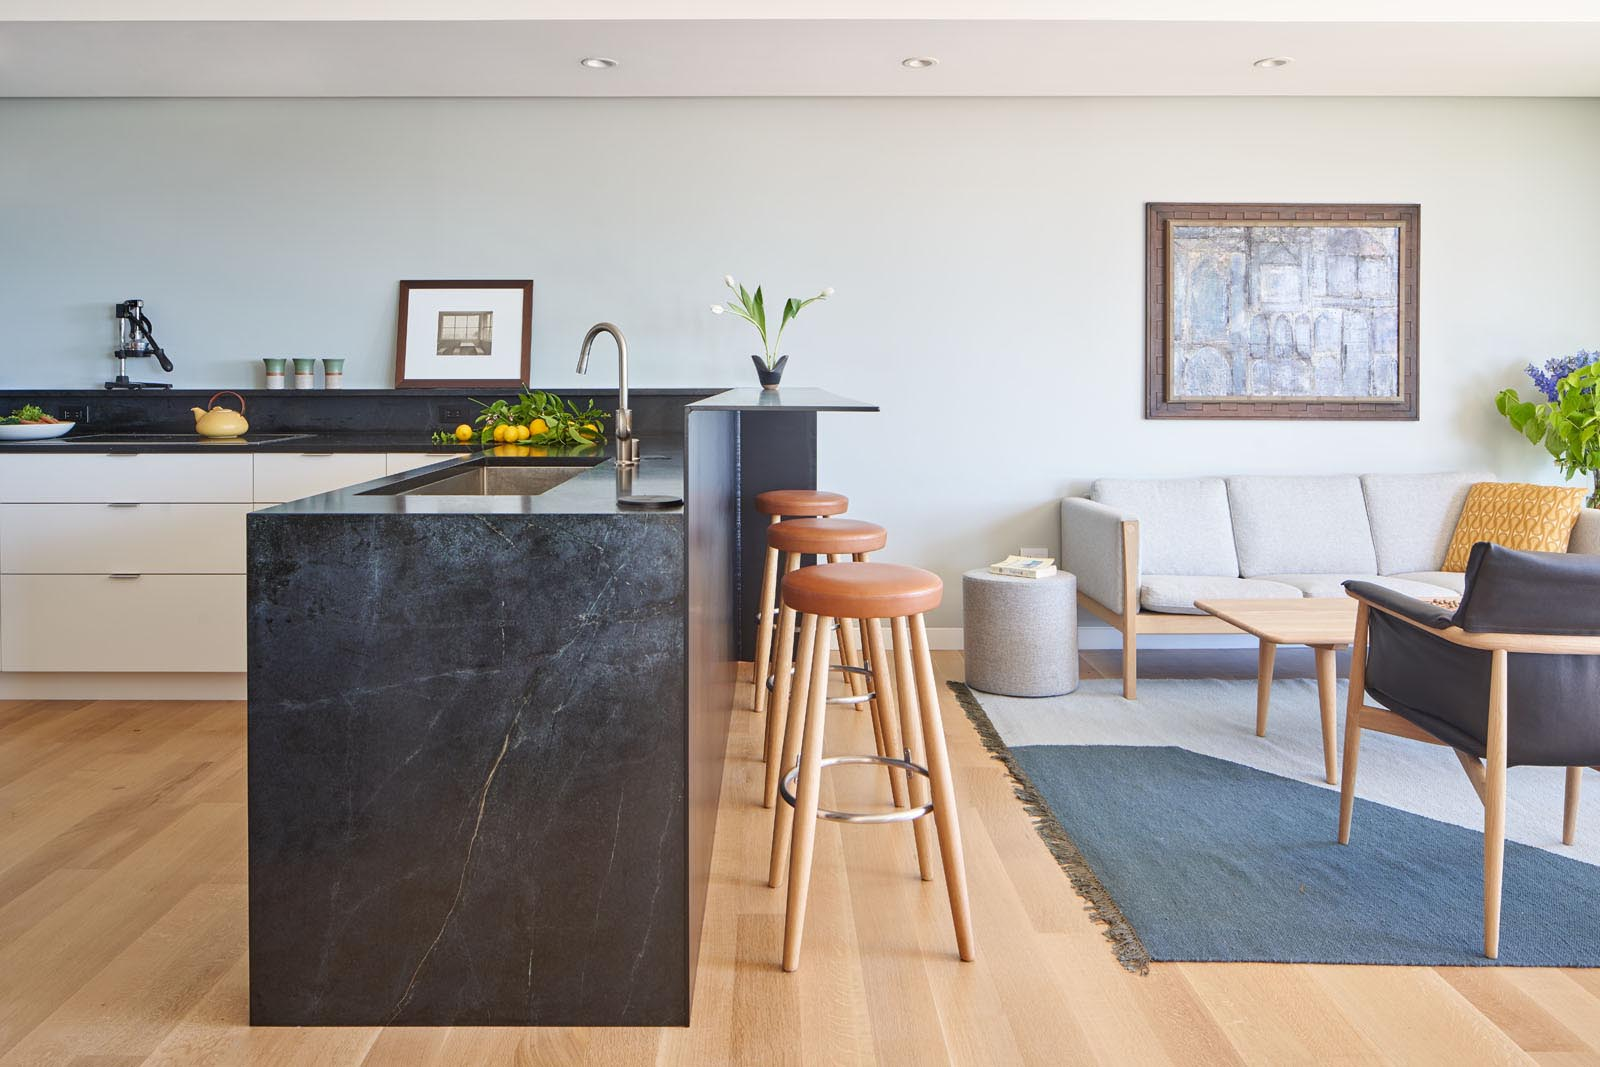 This modern kitchen has been designed with a wall of white cabinetry that wraps around to become lower cabinets, while the dark countertop connects with a raised steel breakfast bar.